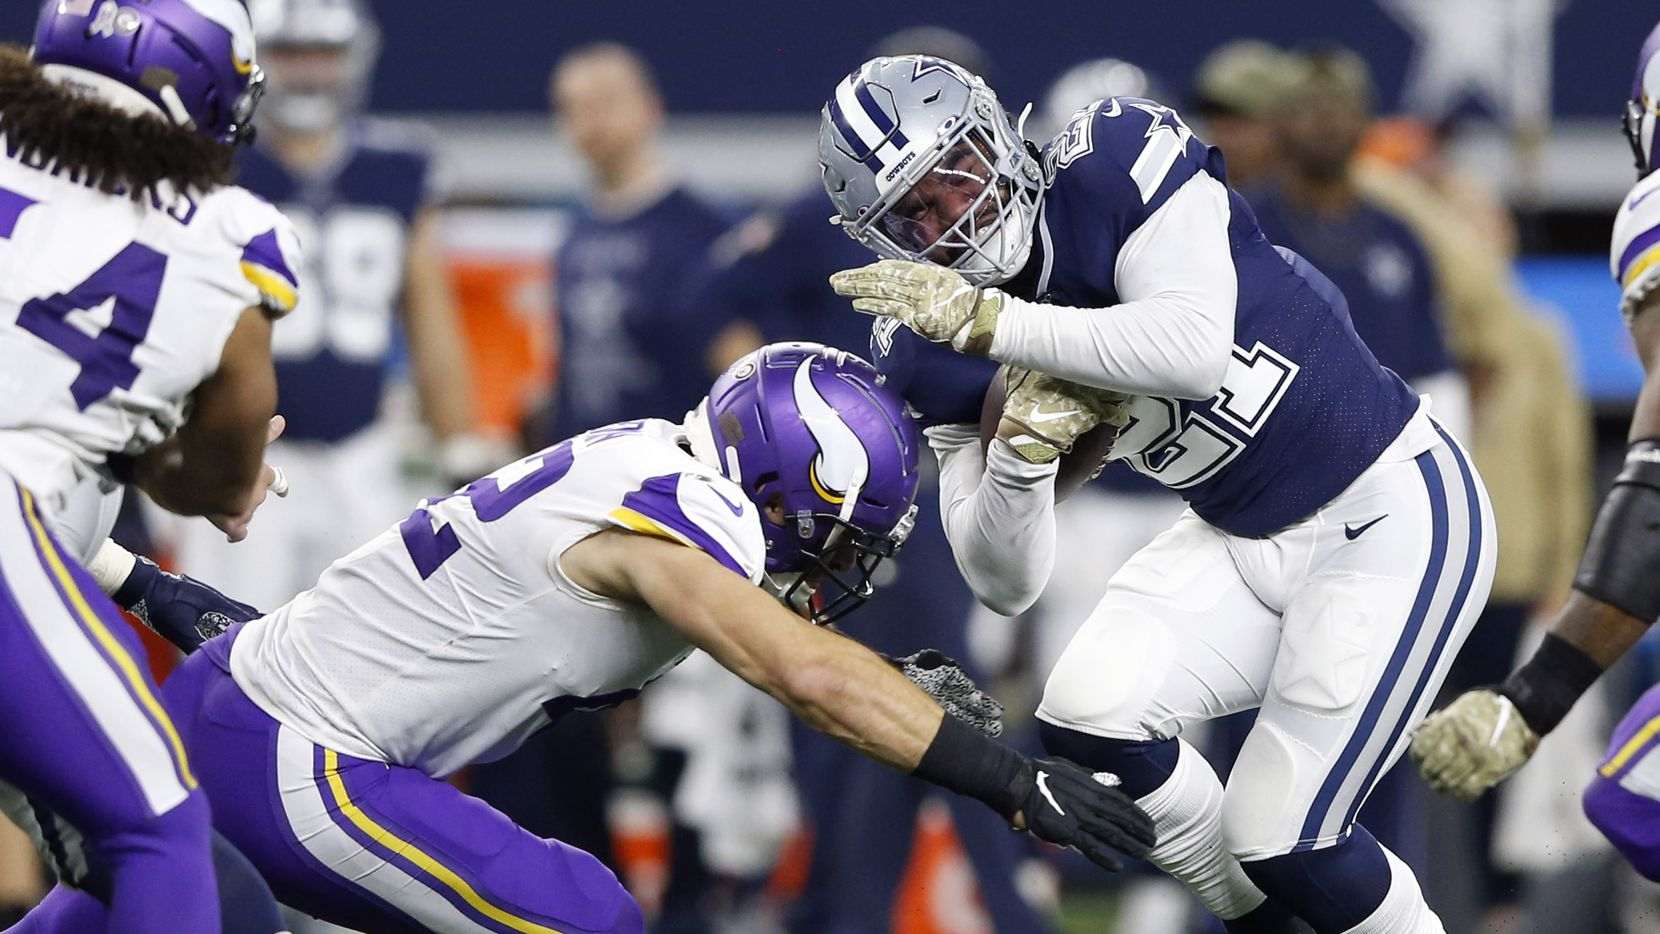 Dallas Cowboys running back Ezekiel Elliott (21) is tackled by Minnesota Vikings outside linebacker Ben Gedeon (42) on a run play during the second half of play at AT&T Stadium in Arlington, Texas on Sunday, November 10, 2019. The Minnesota Vikings defeated the Dallas Cowboys 28-24. (Vernon Bryant/The Dallas Morning News)